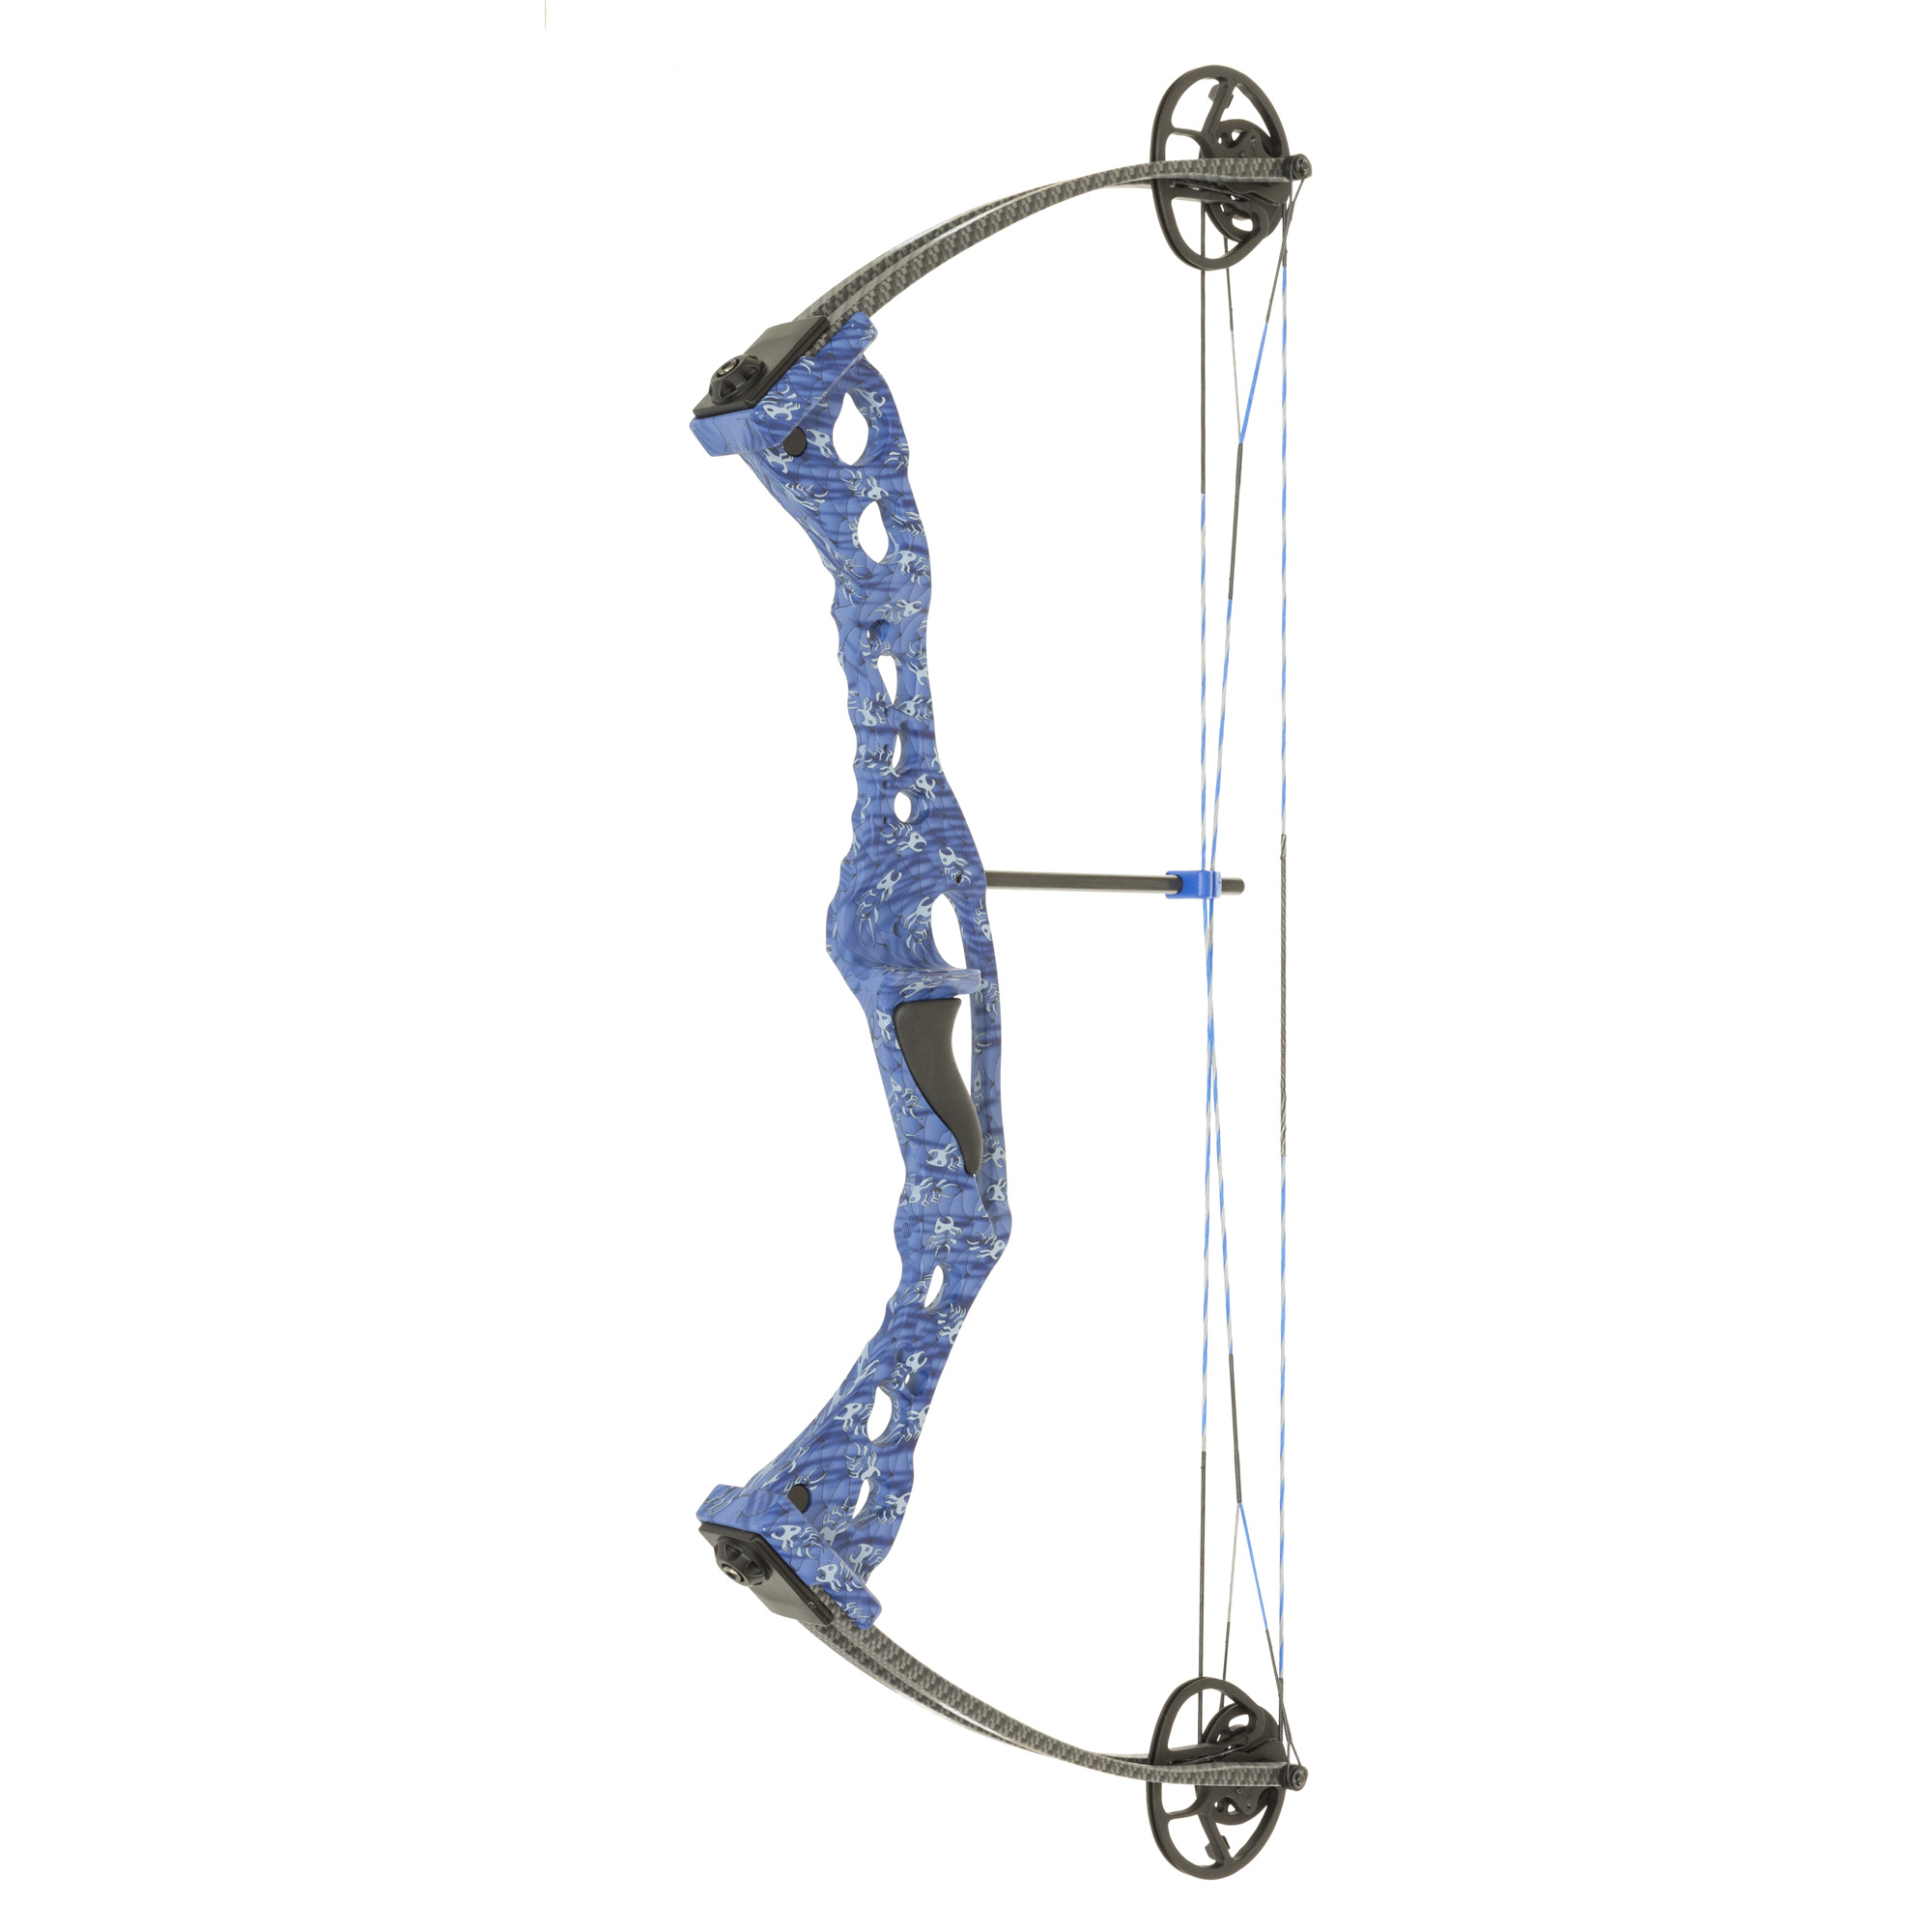 Sand shark recurve bowfishing bow for Compound bow fishing